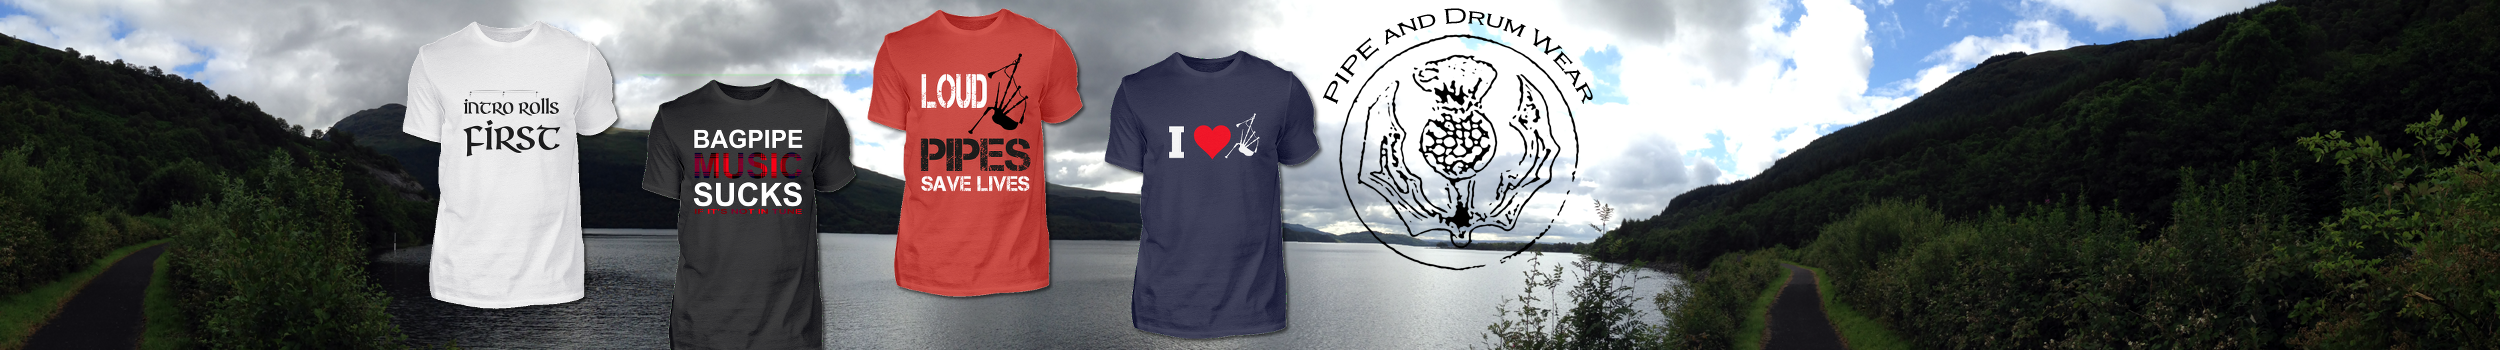 Pipes and Drums Funshirts